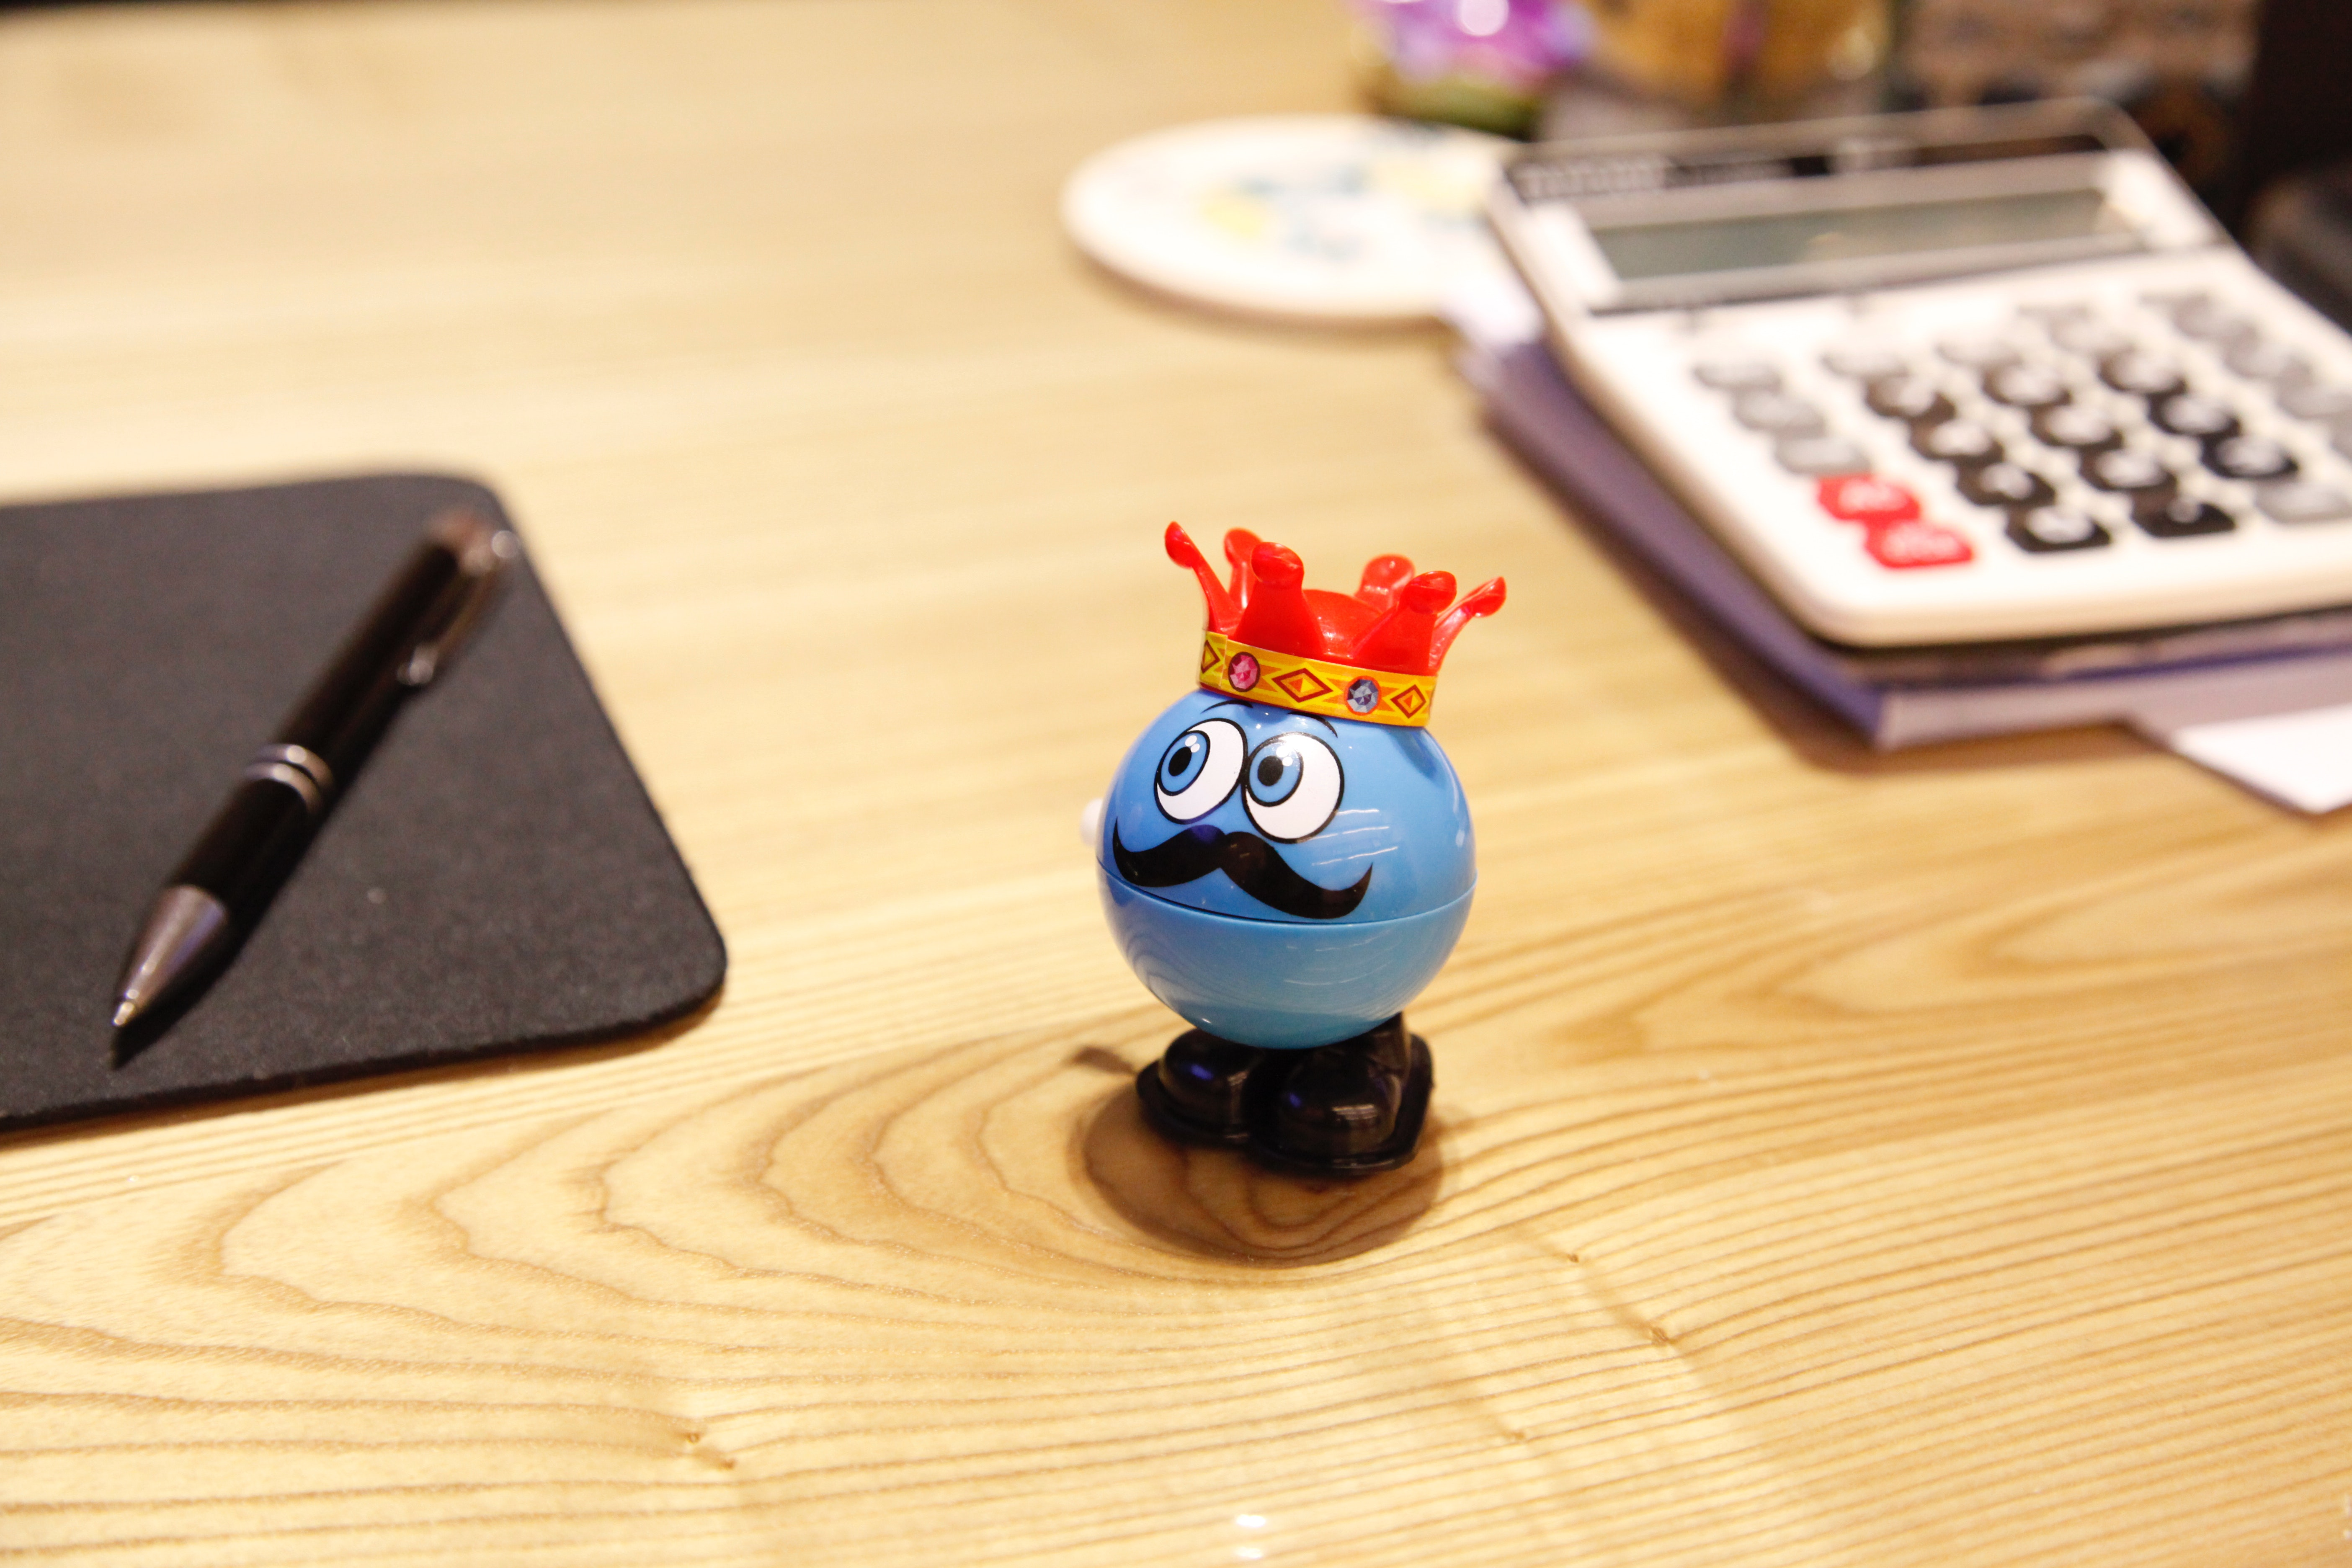 Blue round plastic toy on a desk photo